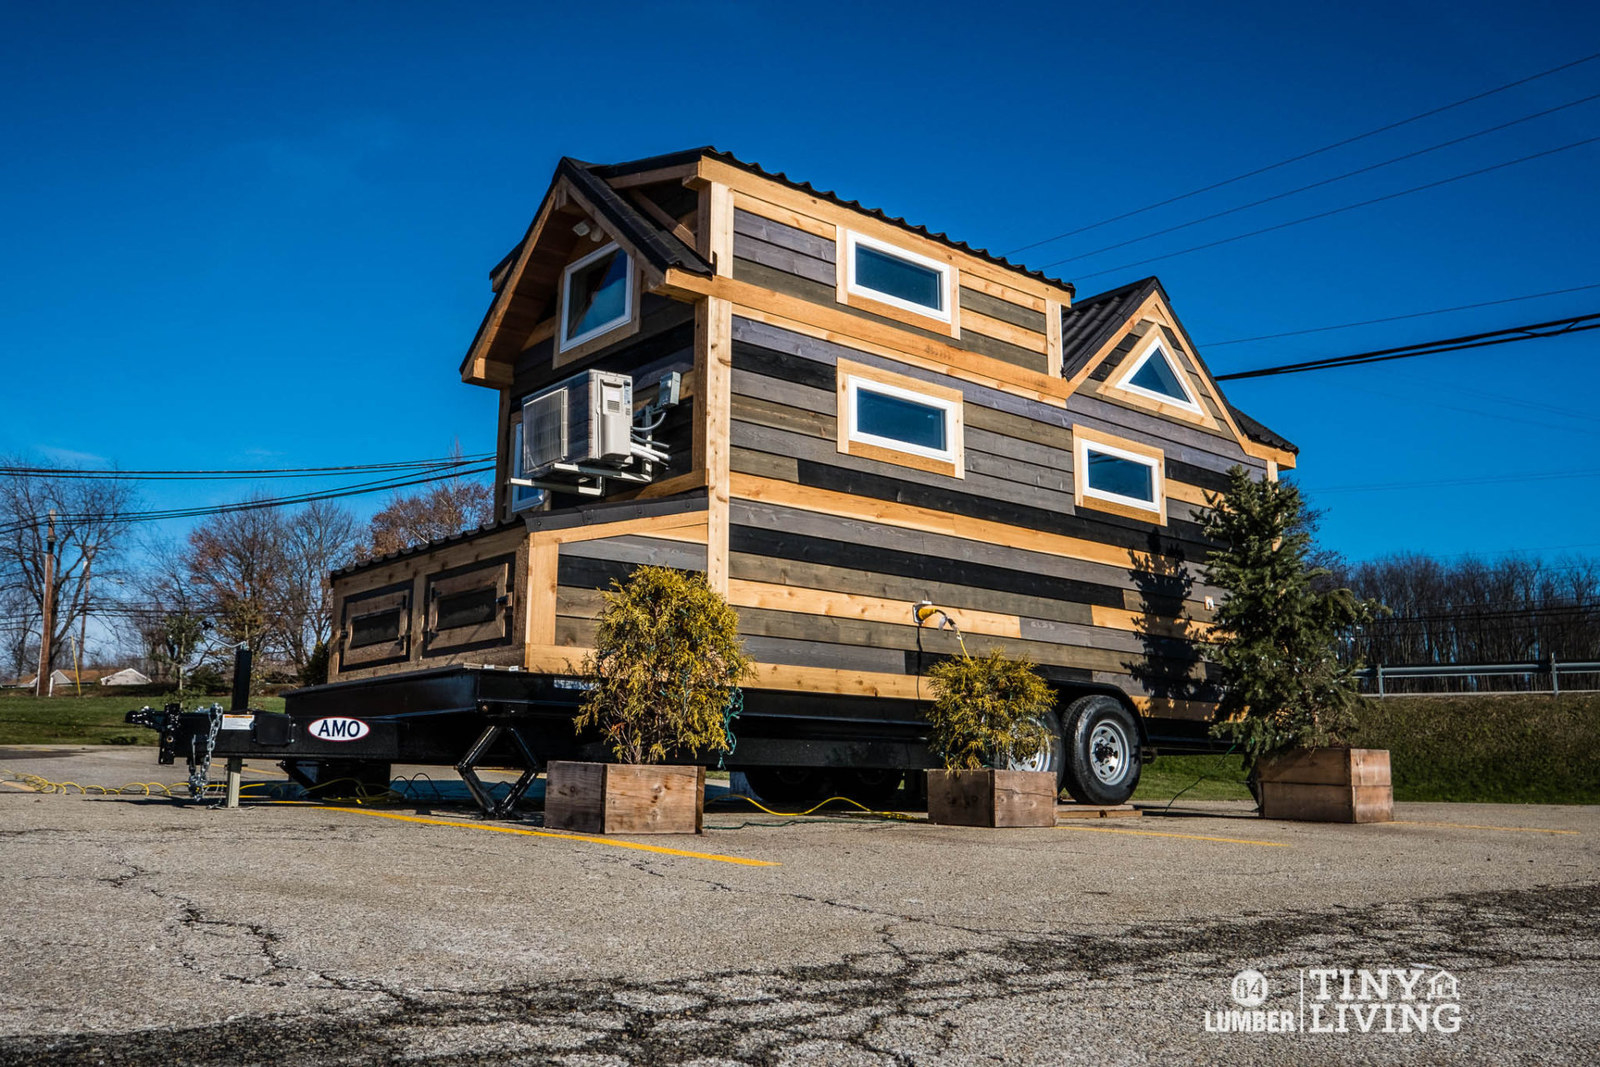 19 Tiny Houses For Sale That You Could Move Into RIGHT NOW